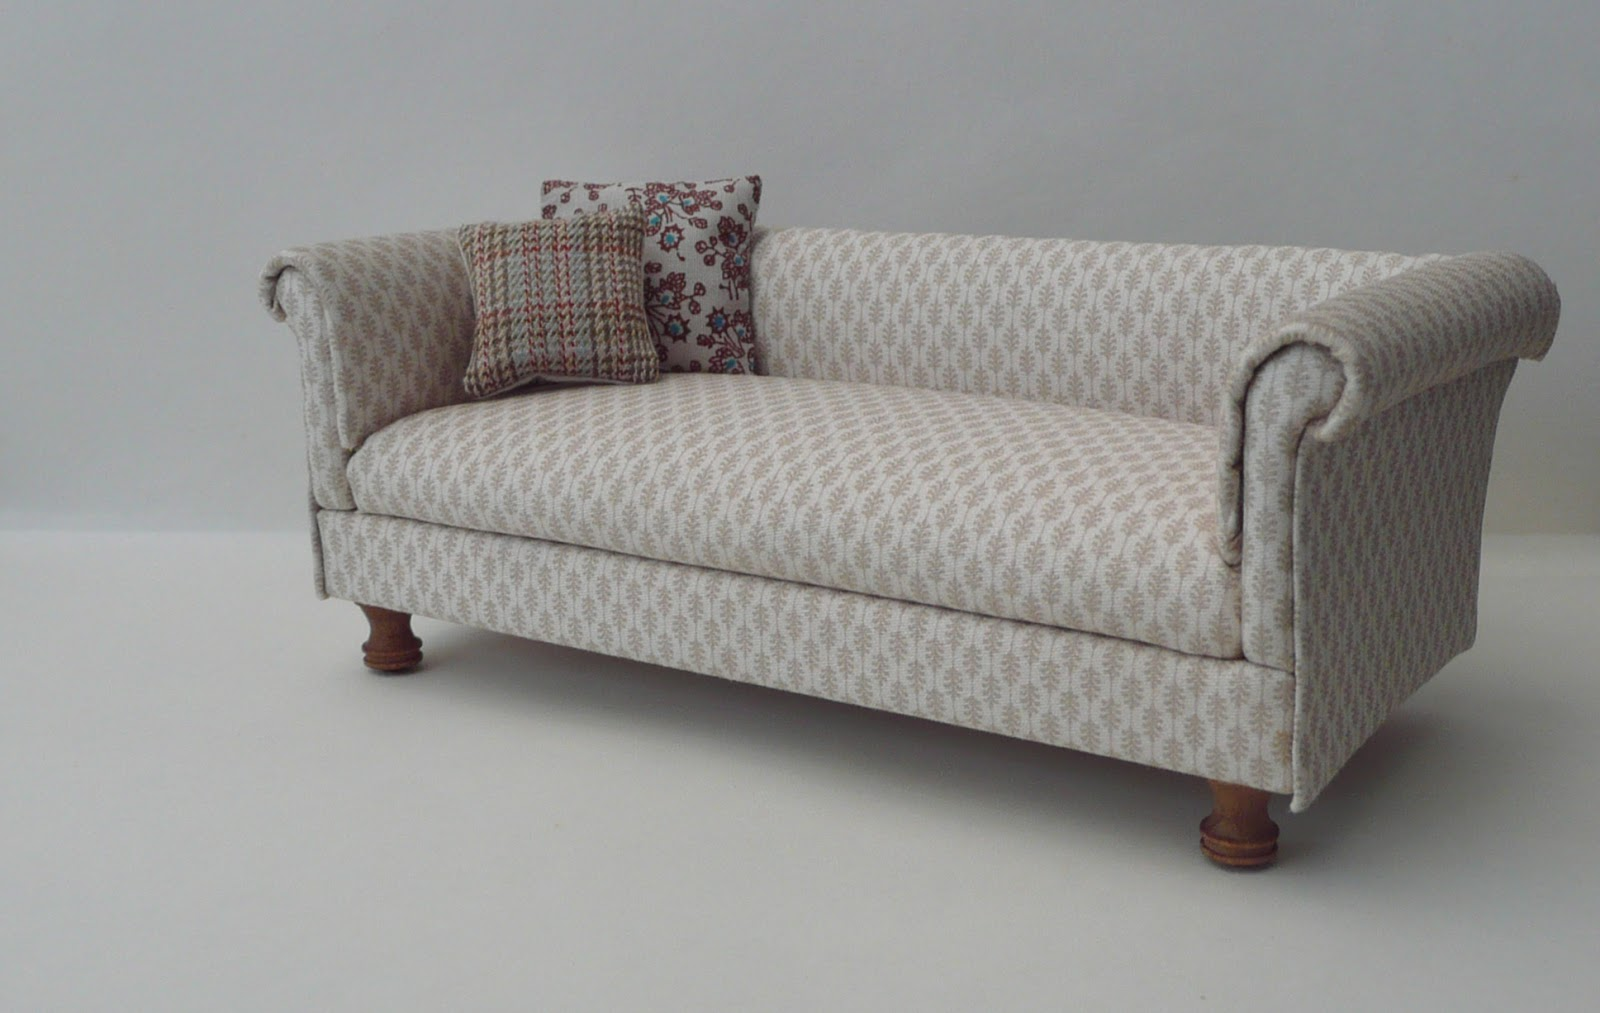 12 foot sofa get rid of amber 39s house 1 just needs feet